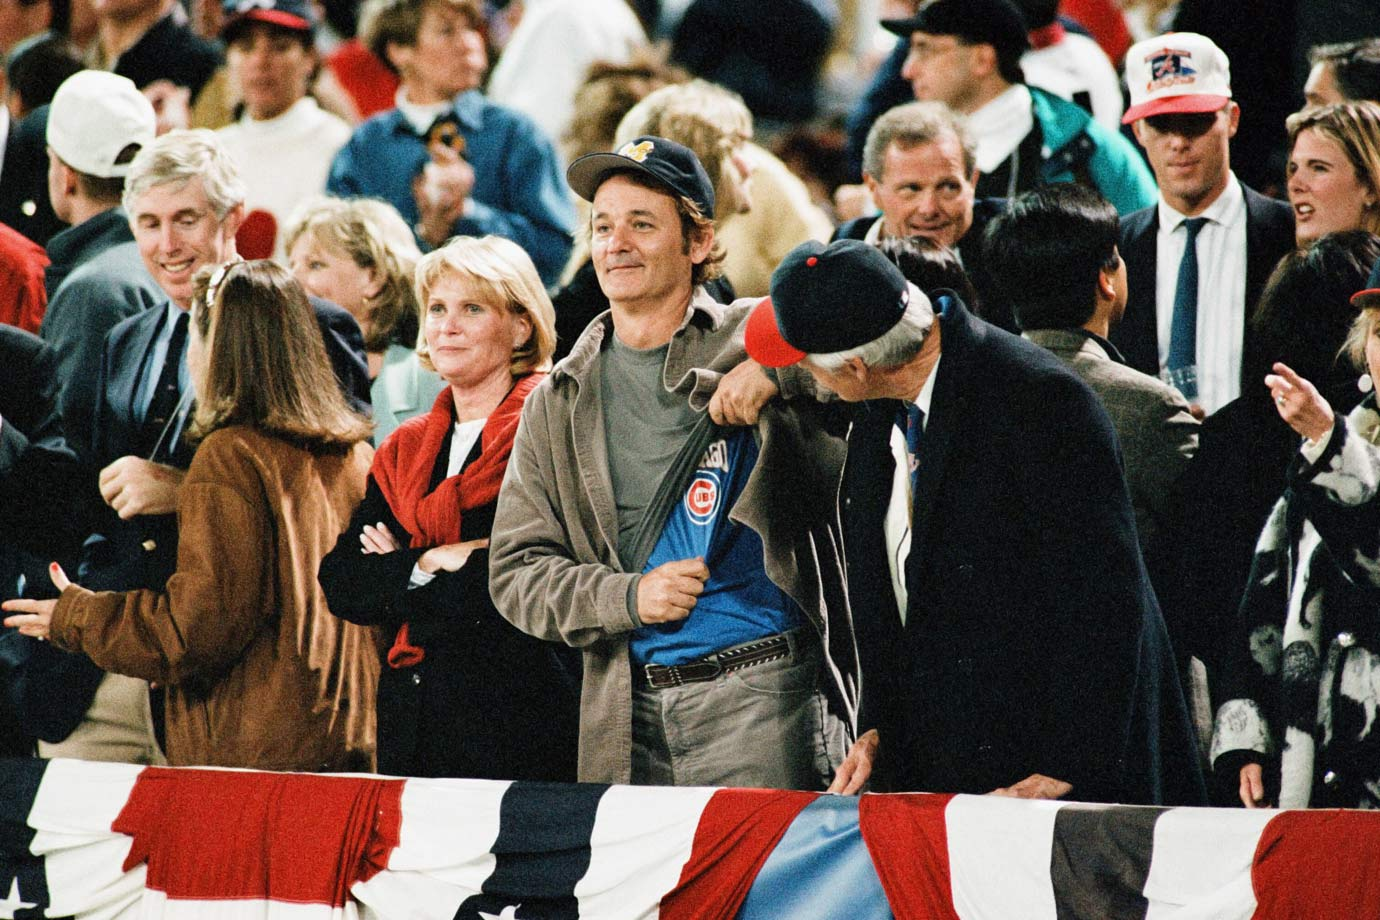 Bill Murray flashes a Chicago Cubs undershirt alongside Atlanta Braves owner Ted Turner during Game 6 of the World Series between the Braves and the Cleveland Indians on Oct. 28, 1995 at Atlanta-Fulton County Stadium in Atlanta.